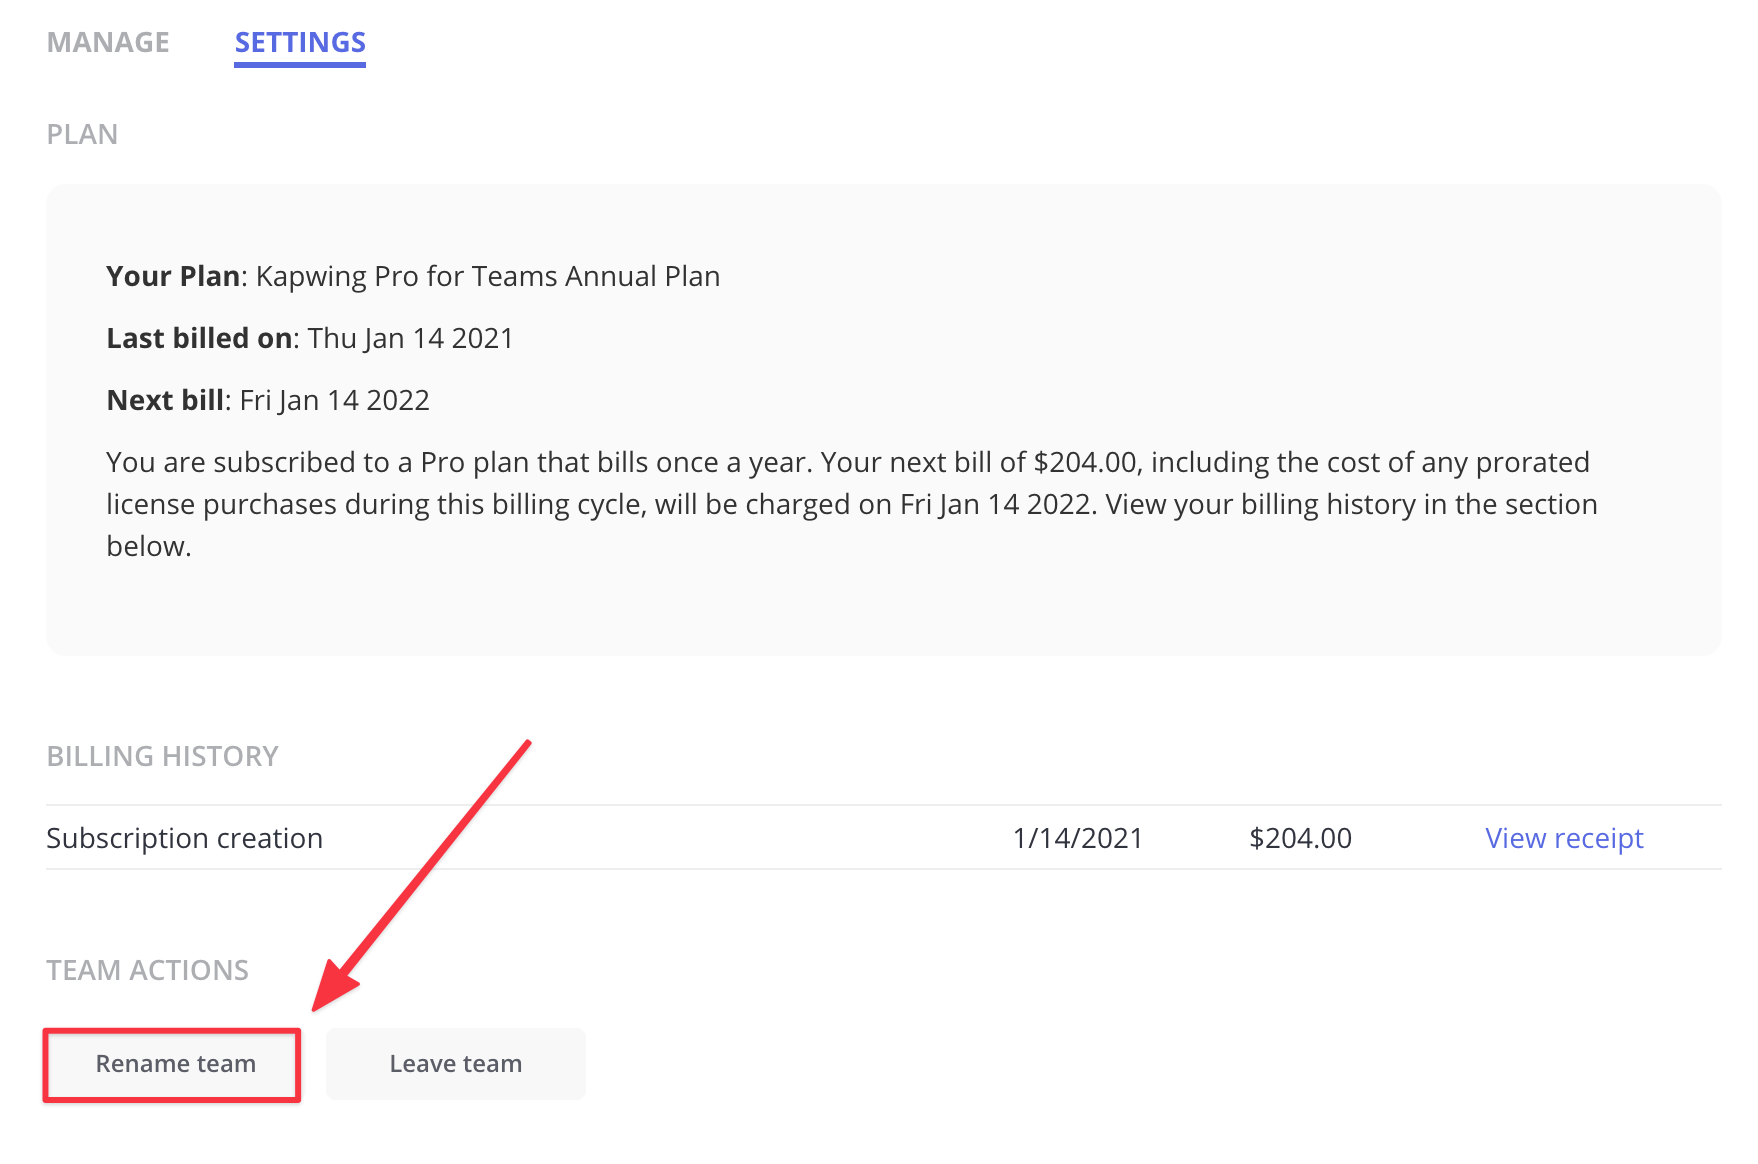 The Rename Team button is on the Settings tab of the Team page view under the Team Actions section